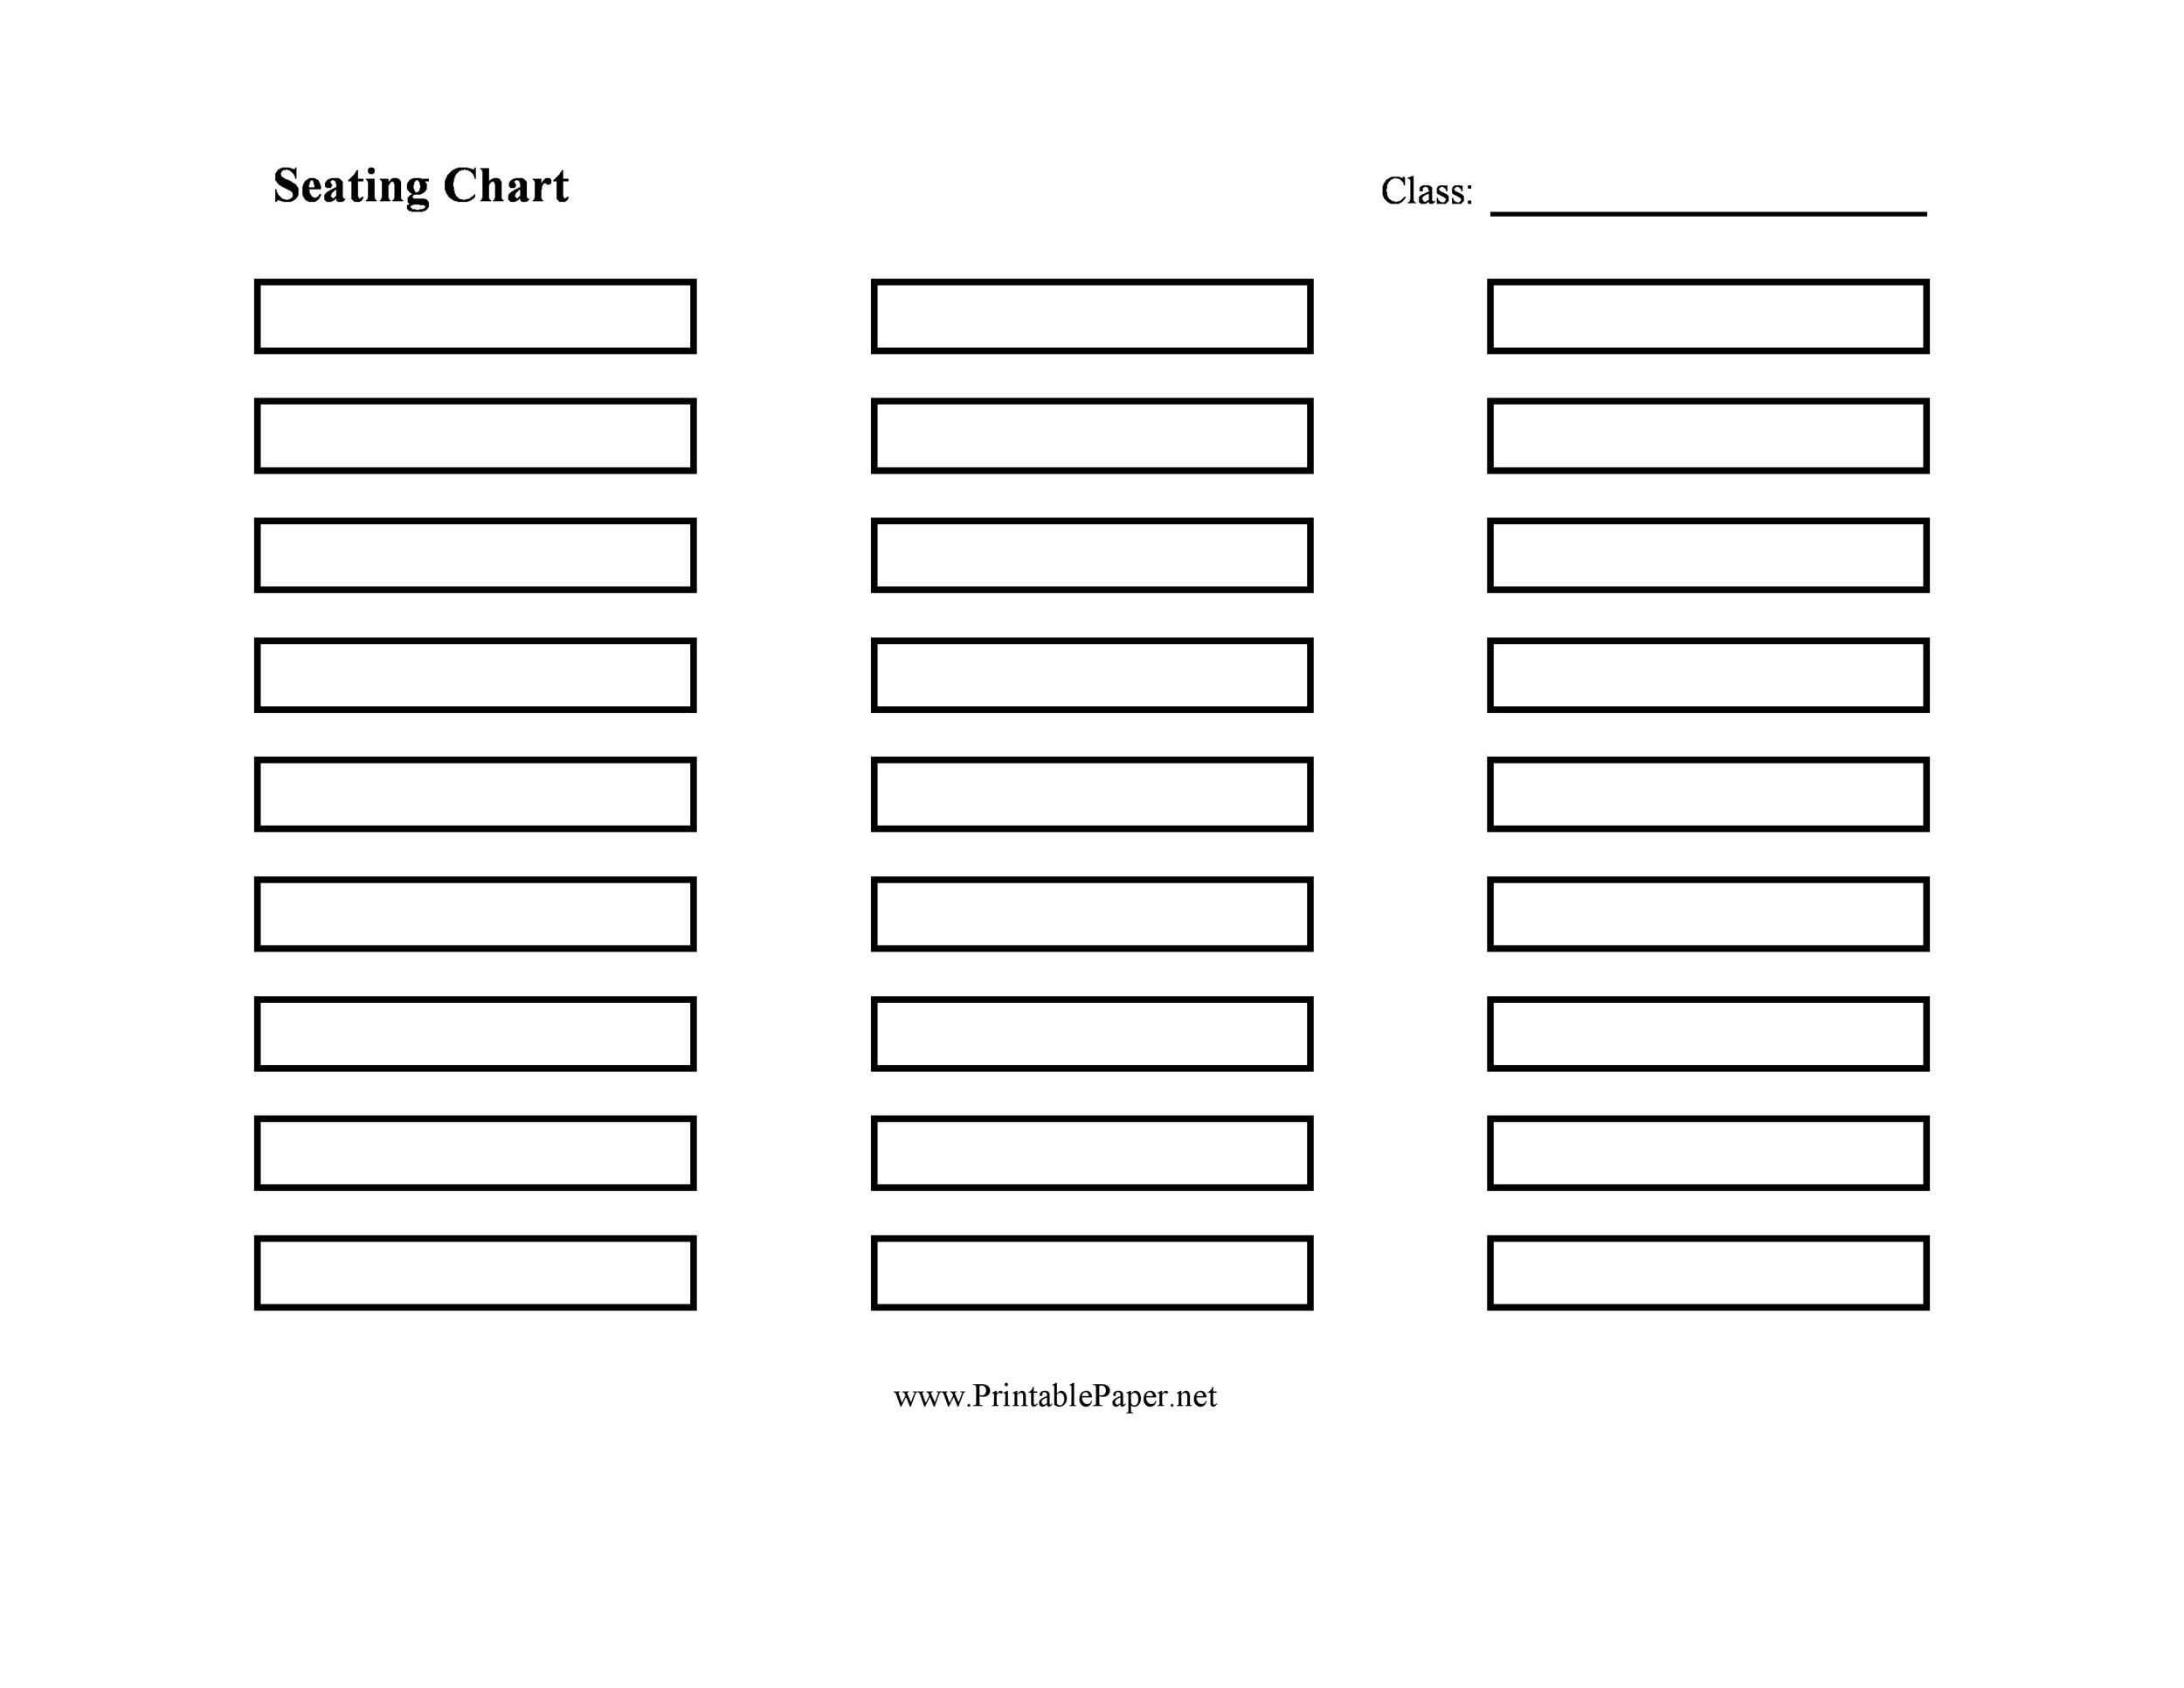 Free seating chart template 14